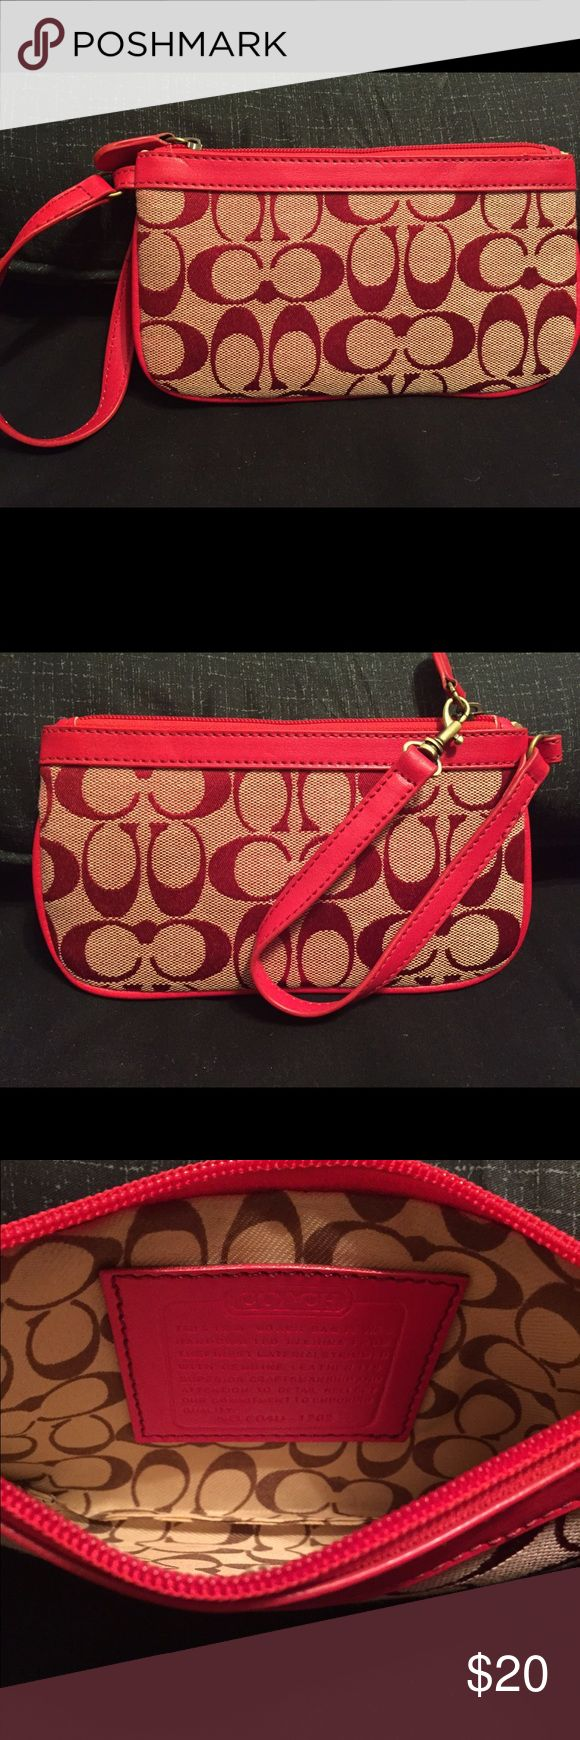 Coach Wristlet Large Coach Wristlet. Color - outside red and tan, inside tan with coach pattern. In really good condition. Coach Bags Clutches & Wristlets